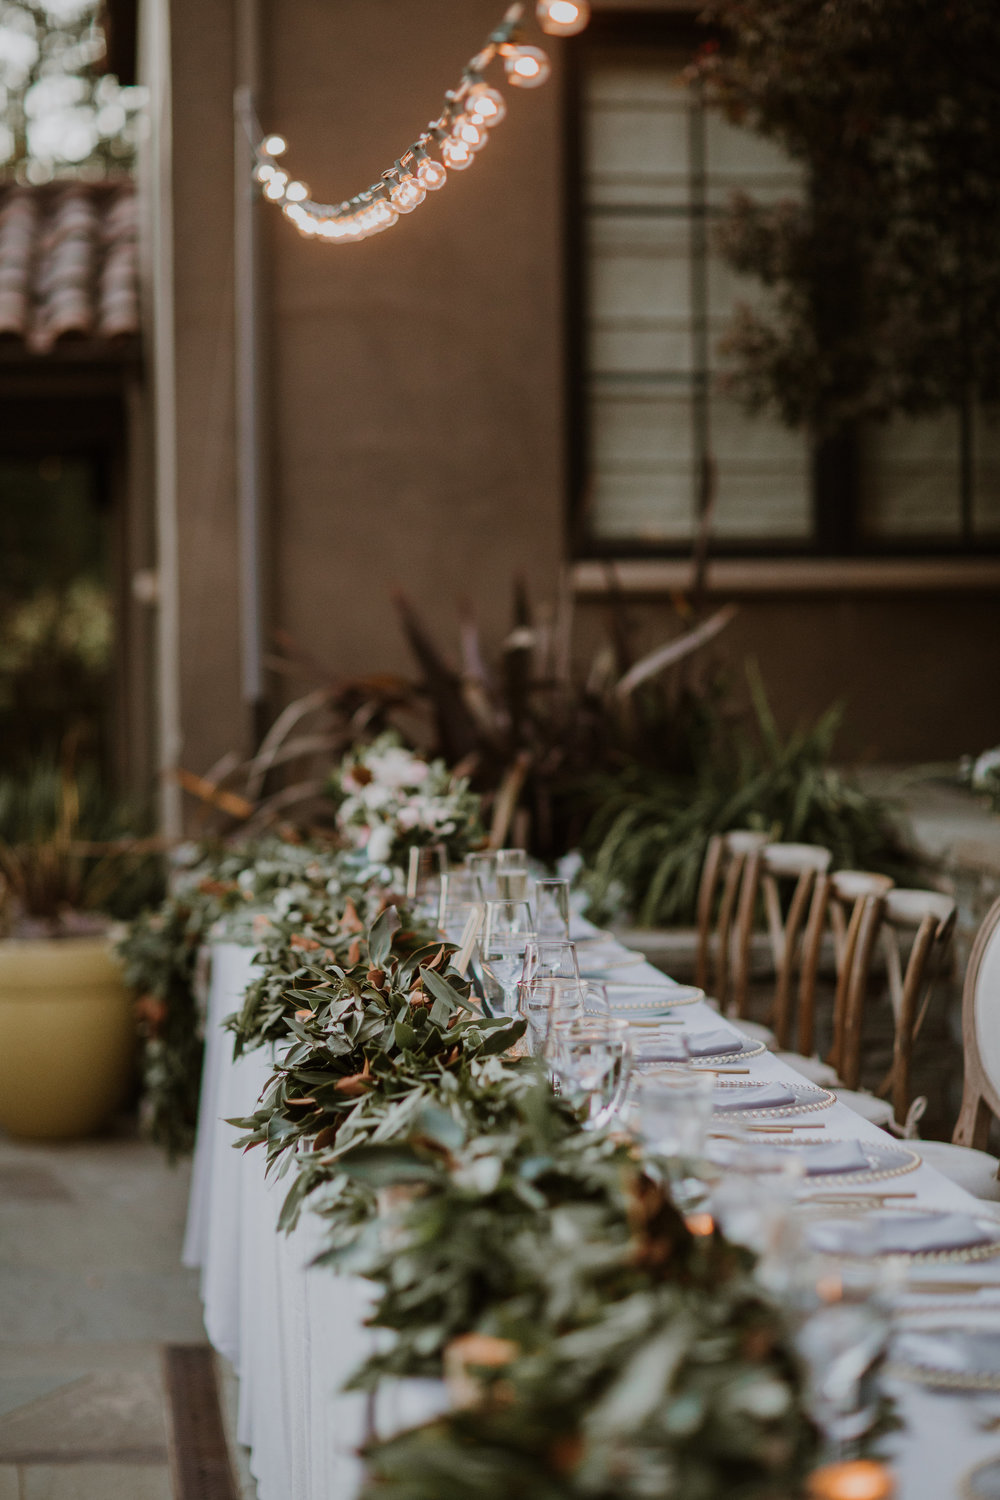 Al fresco Healdsburg wedding  - flowers by Venn Floral, photographed by Gretchen Gause Photography.